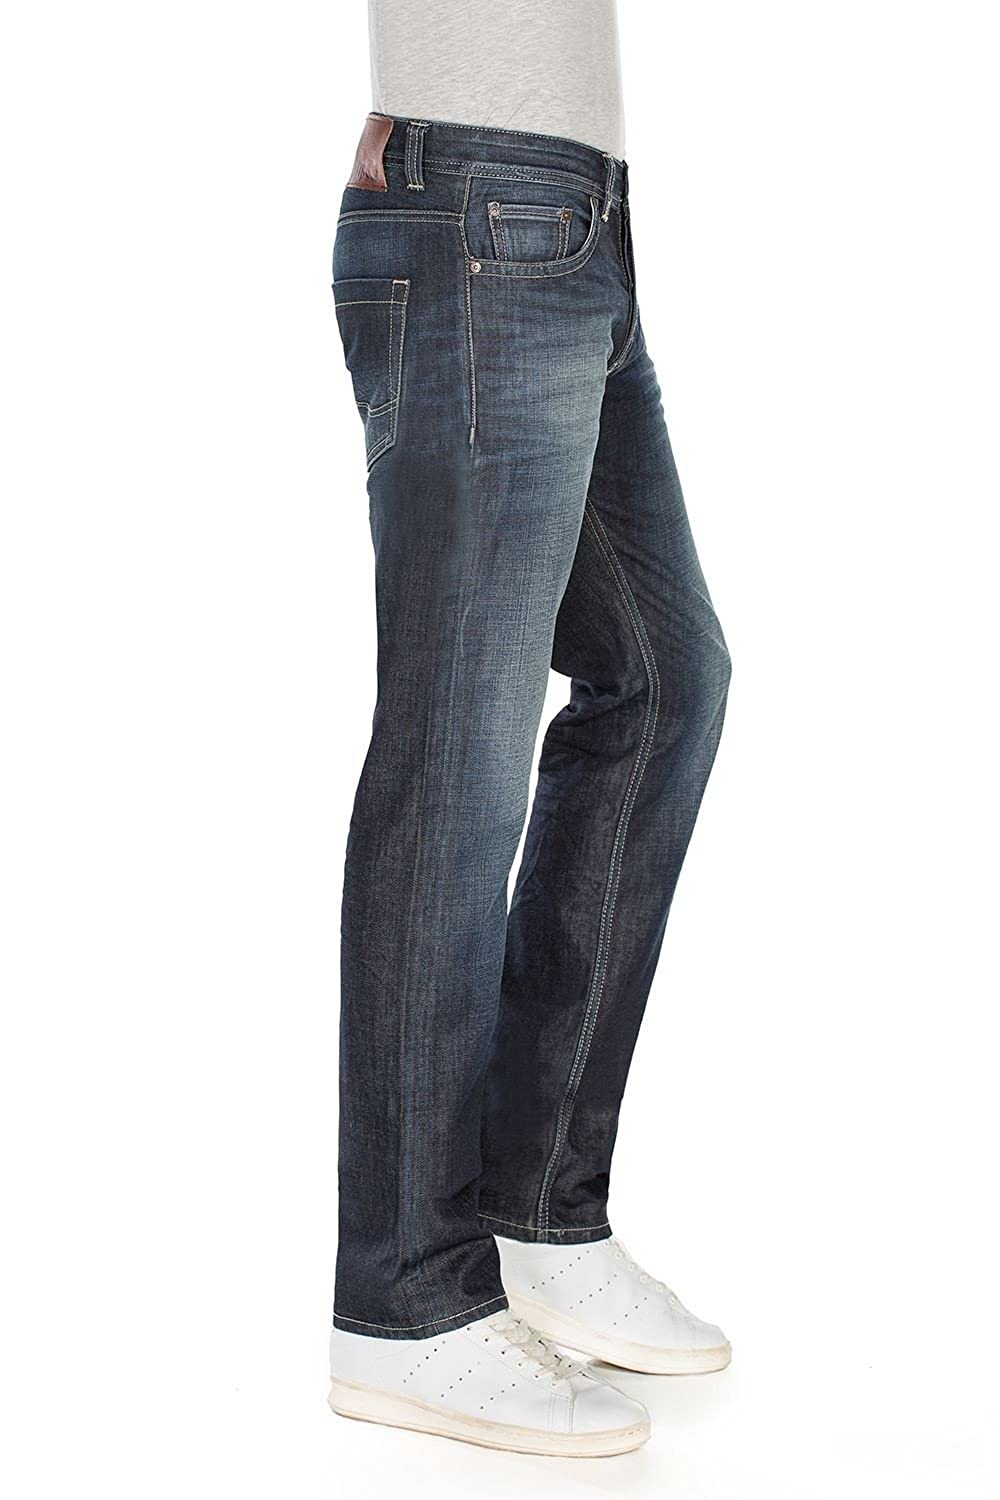 LTB Herren Jeans Hollywood Straight Fit iconium wash